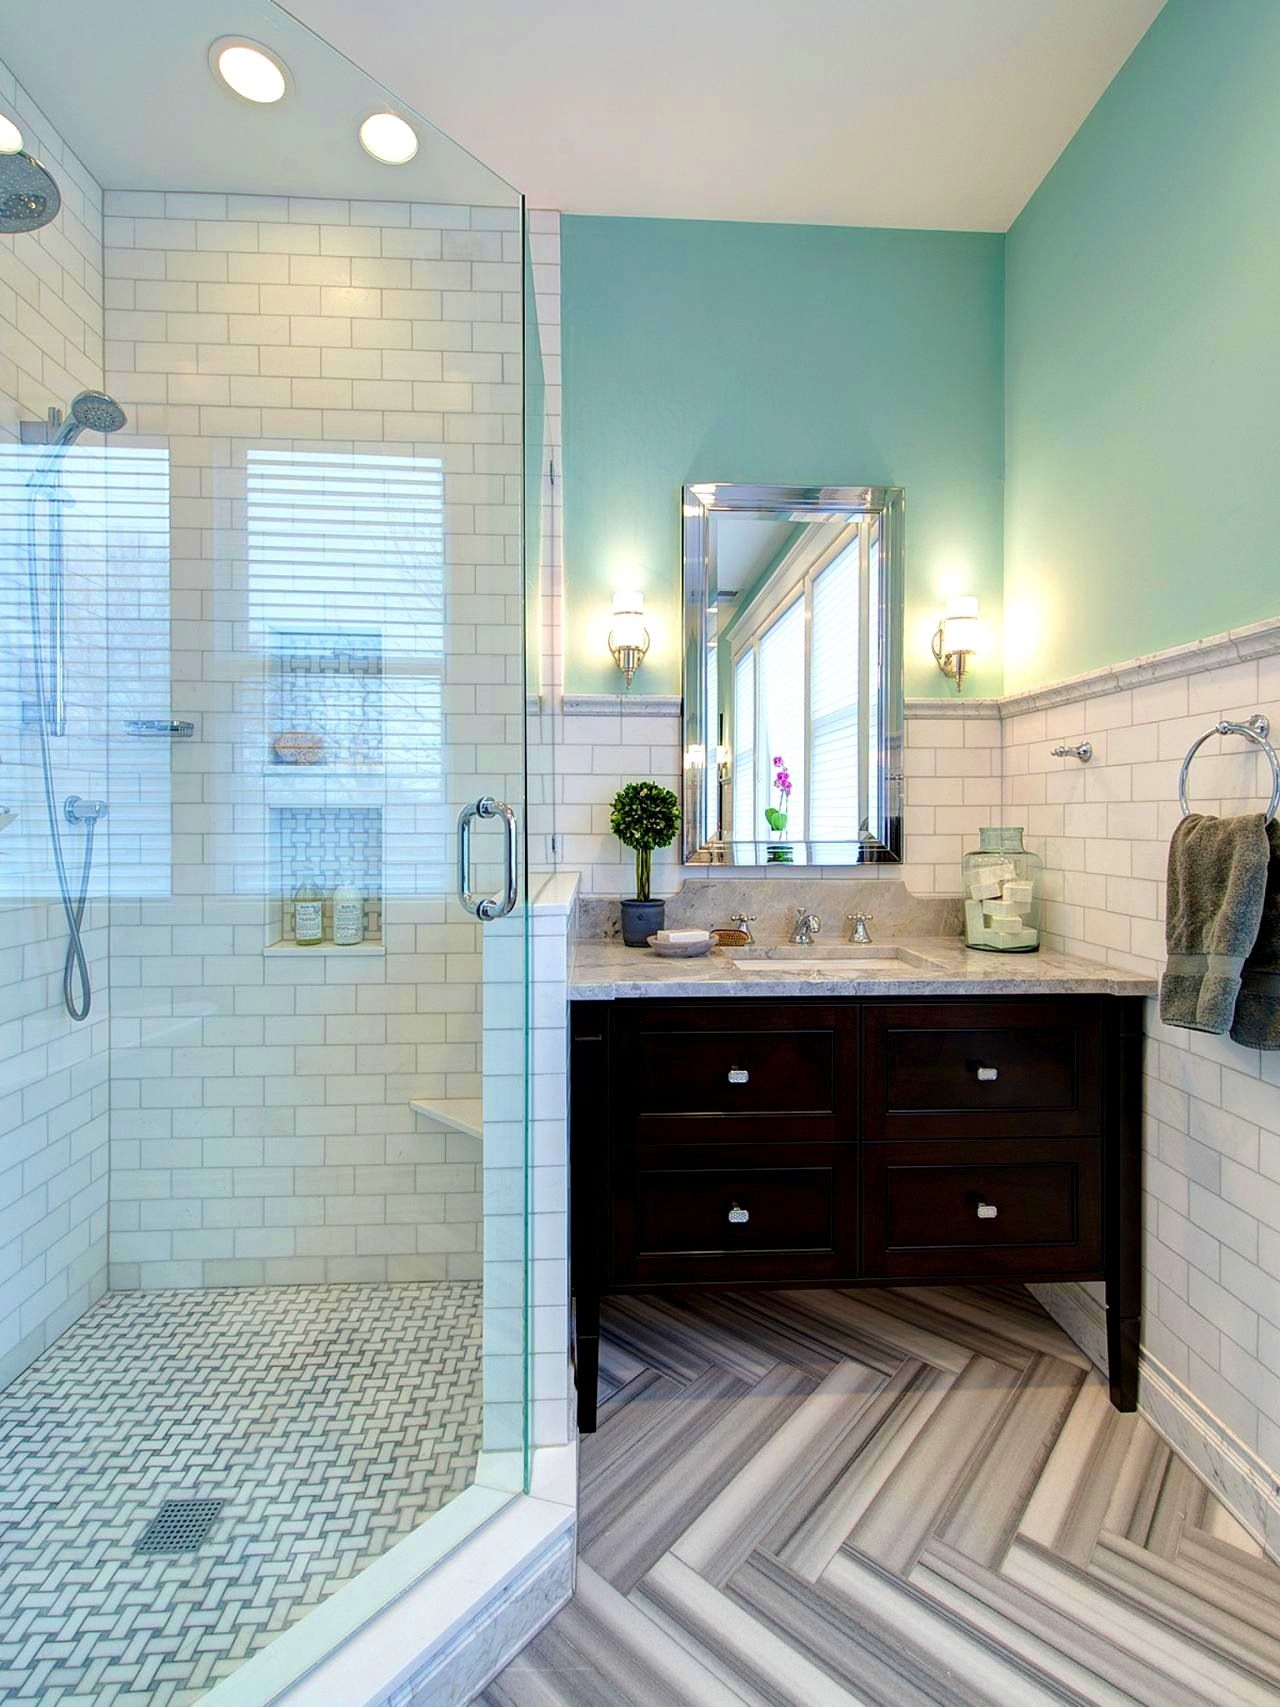 French bathroom houzz - Houzz Eclectic Bathrooms